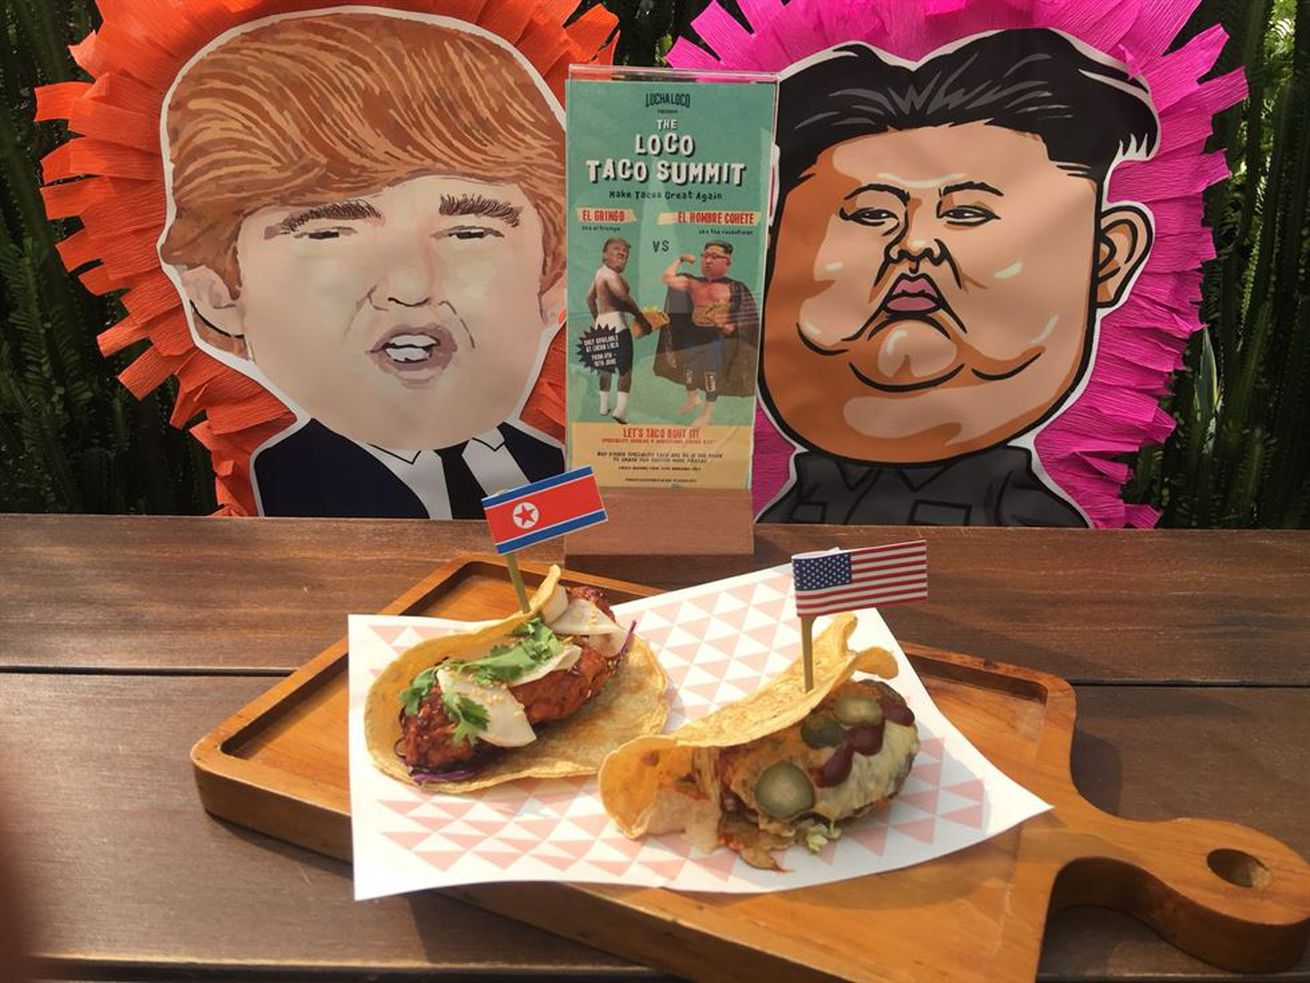 Singapore Restaurants Commemorate Trump-Kim Summit With Themed Tacos and Burgers